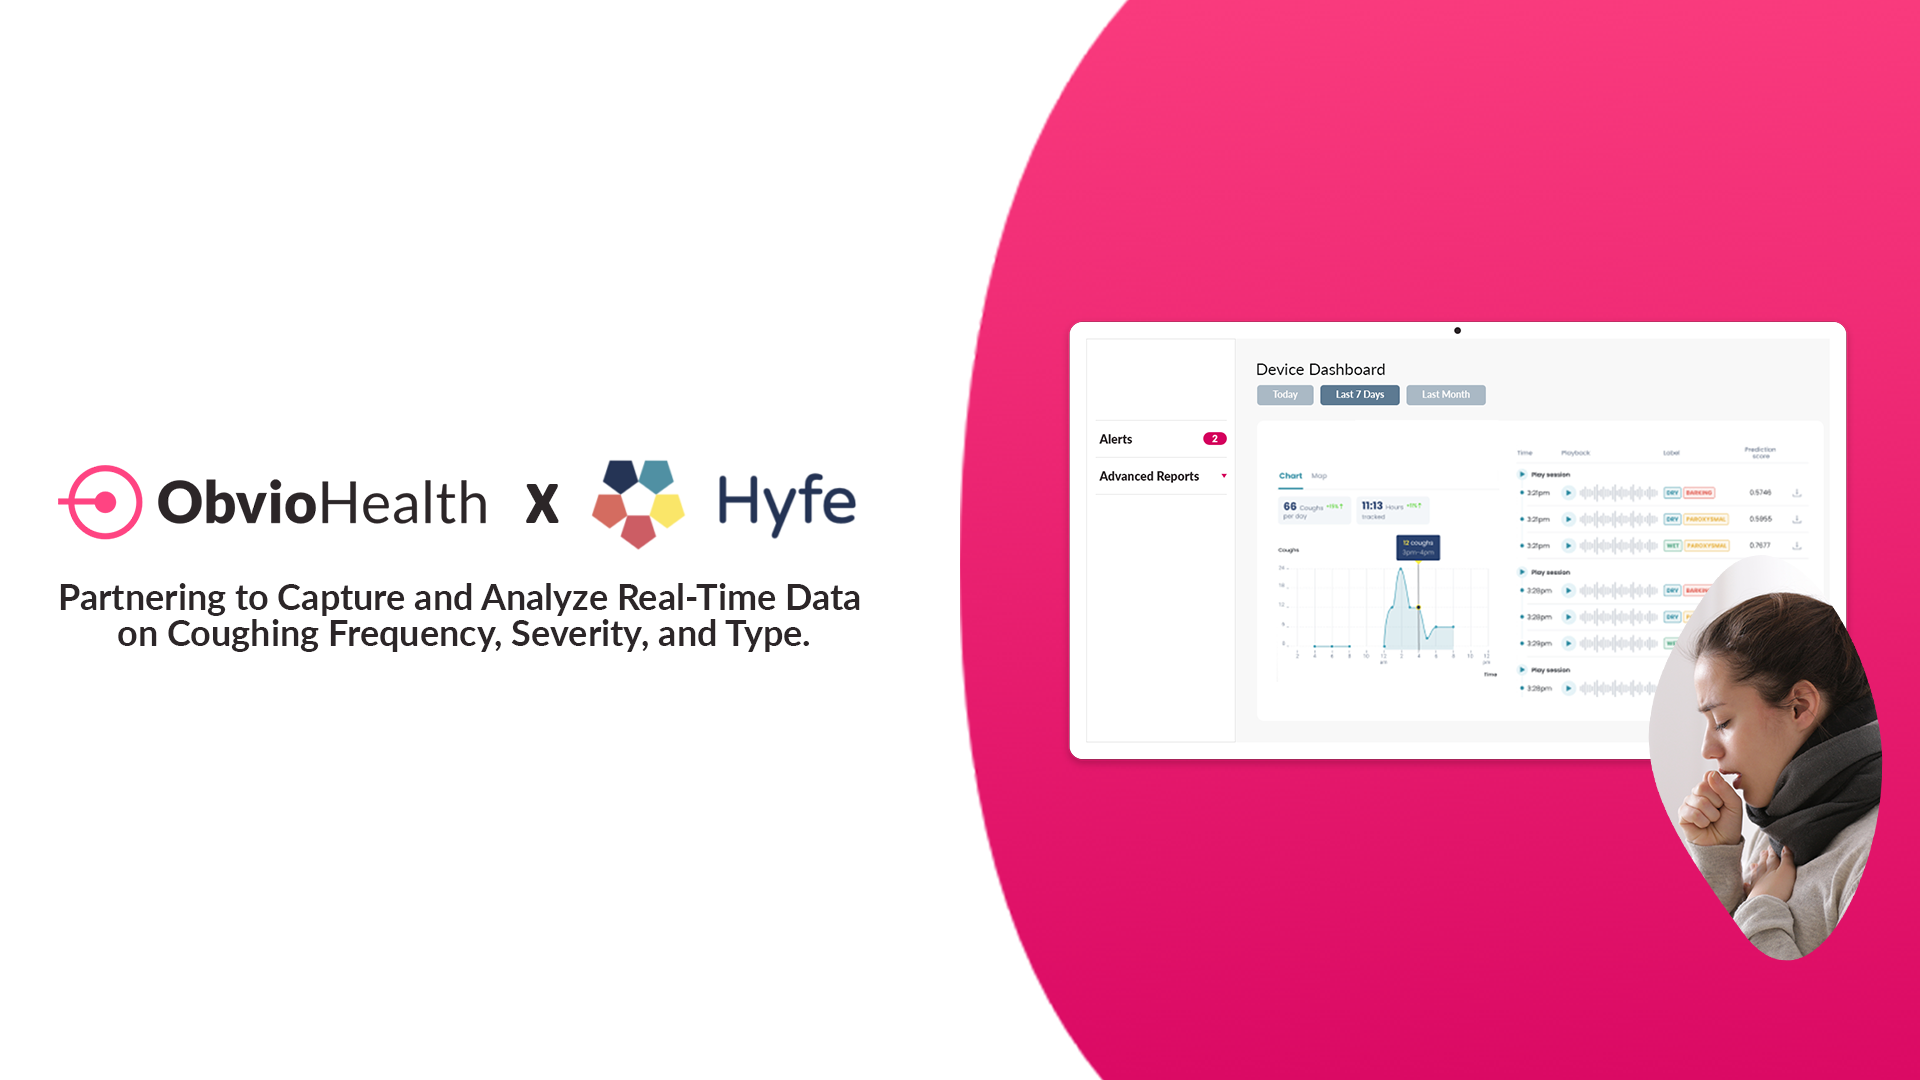 ObvioHealth partners with Hyfe AI to Capture and Analyze Coughing Events.